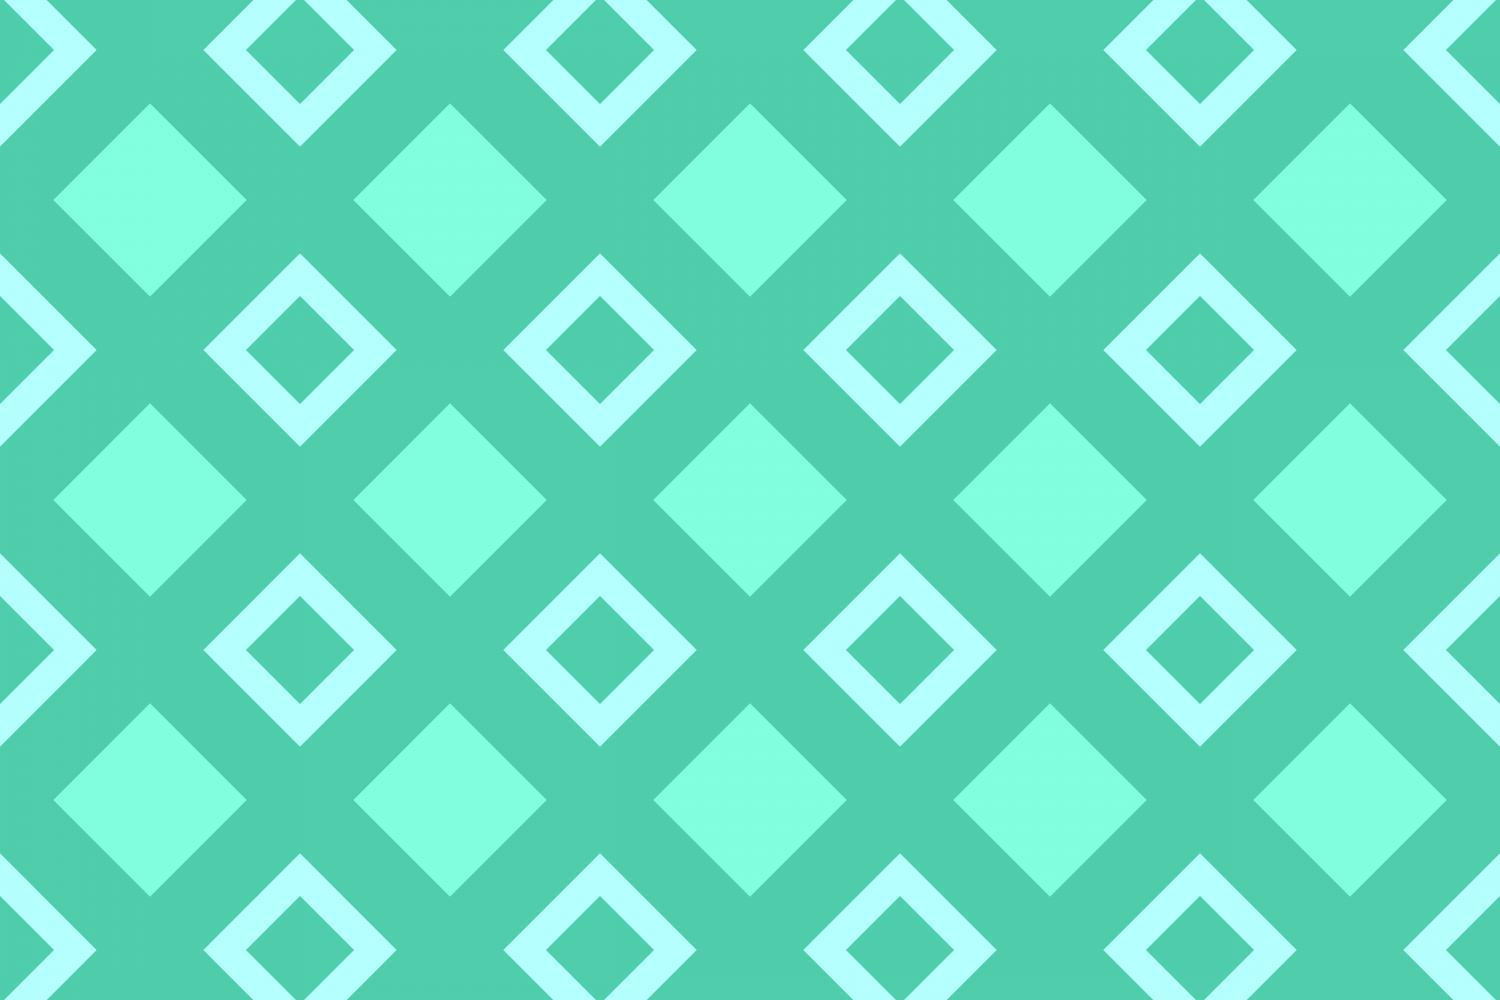 Download Free Seamless Threetone Square Pattern Graphic By Davidzydd for Cricut Explore, Silhouette and other cutting machines.